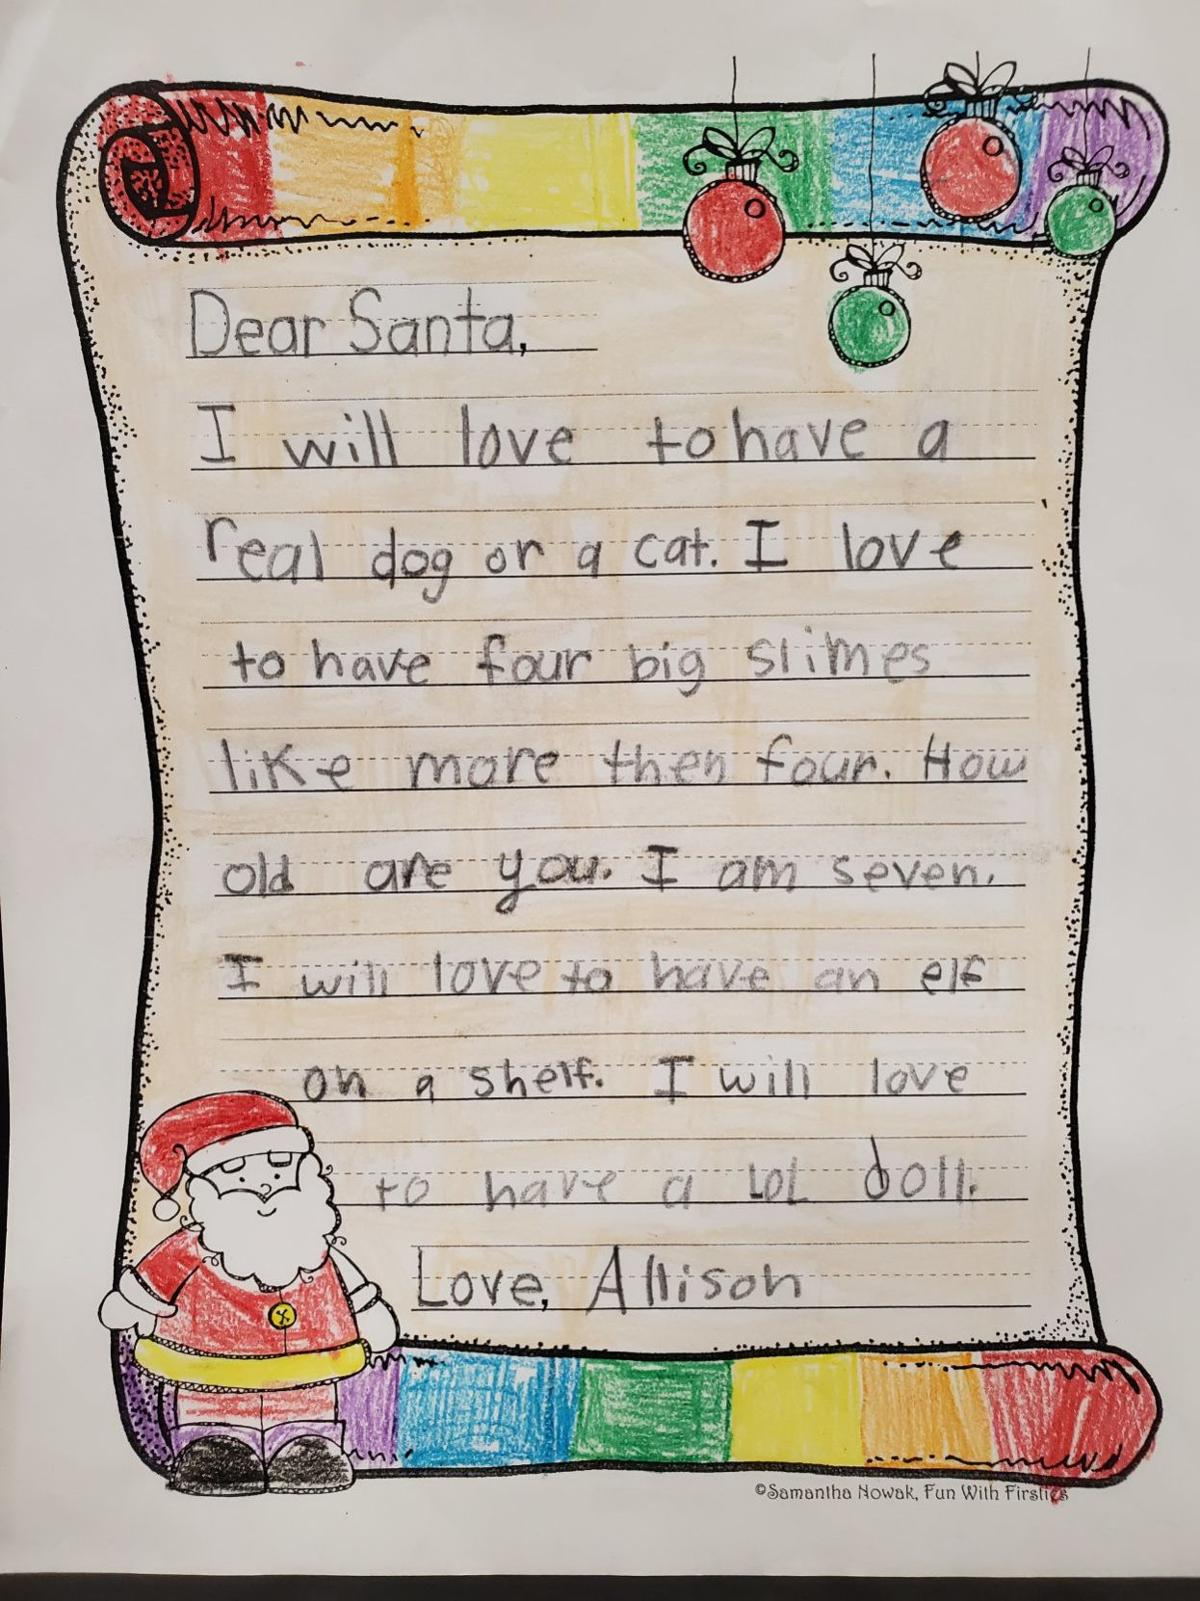 Culpeper Second Graders Send Their Christmas Wishes To The North